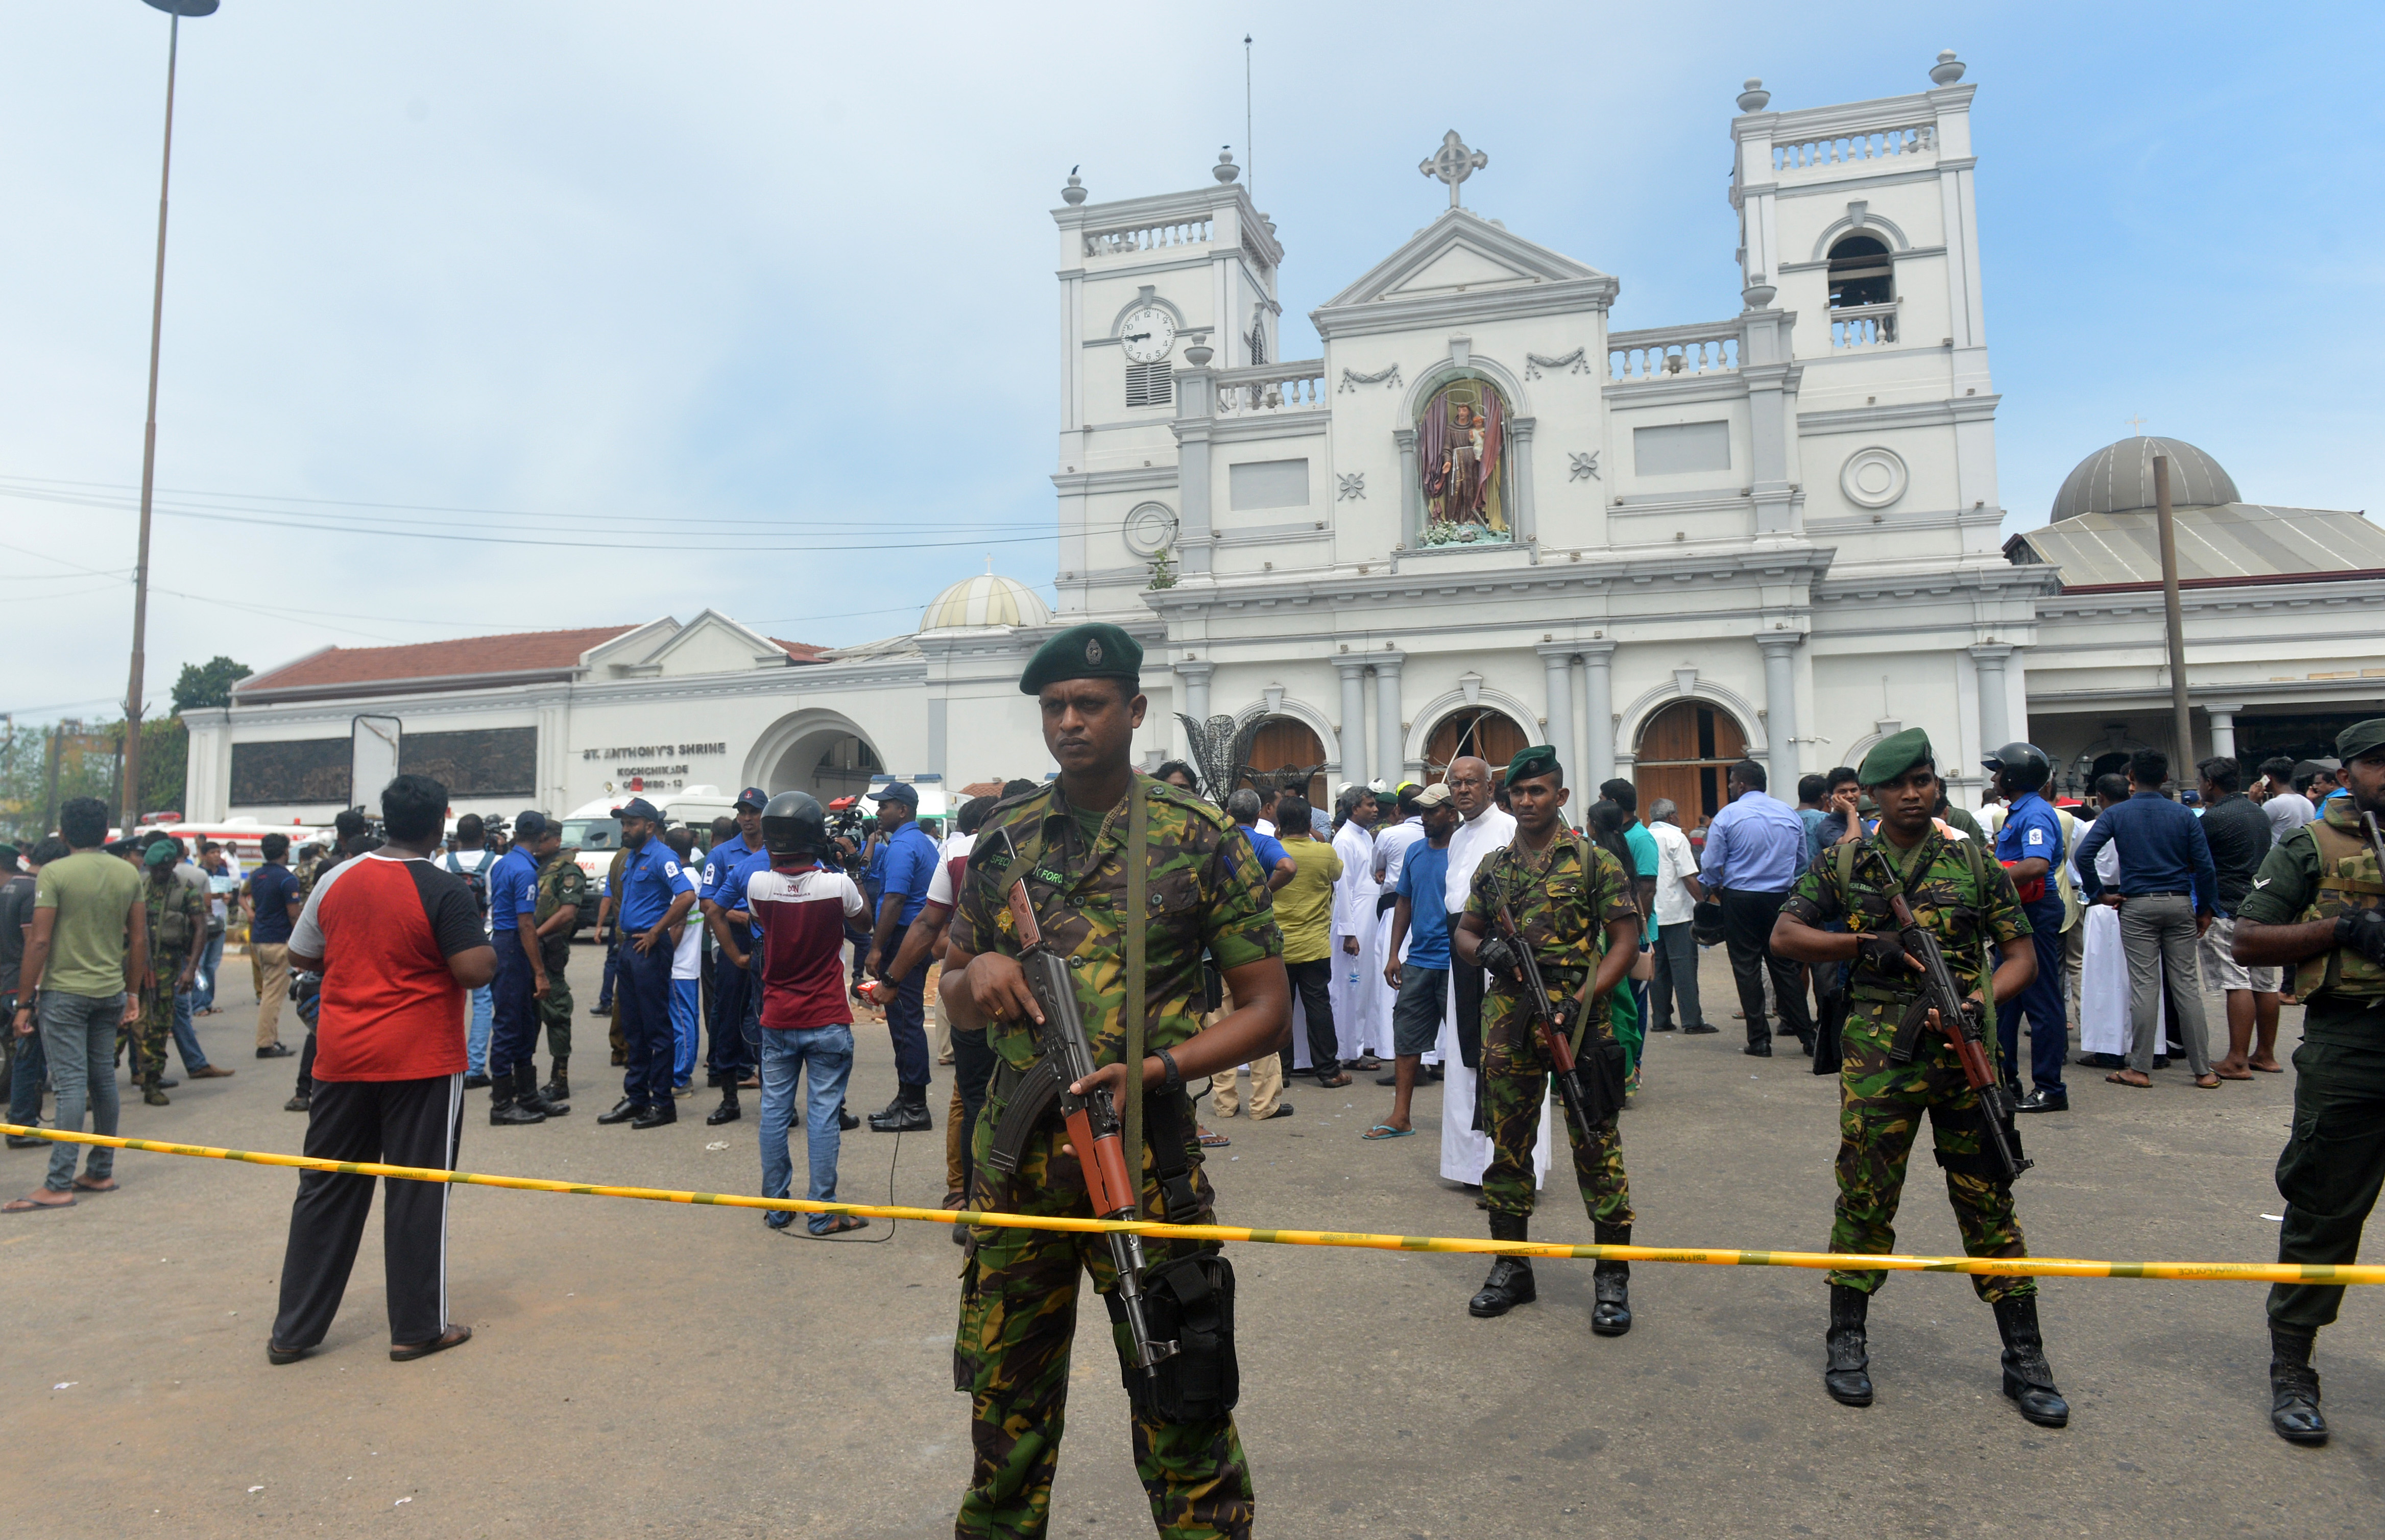 Sri Lankan security personnel keep watch outside the church premises following a blast at the St. Anthony's Shrine in Kochchikade, Colombo on April 21, 2019. Explosions have hit three churches and three hotels in and around the Sri Lankan capital of Colombo, police said on April 21.